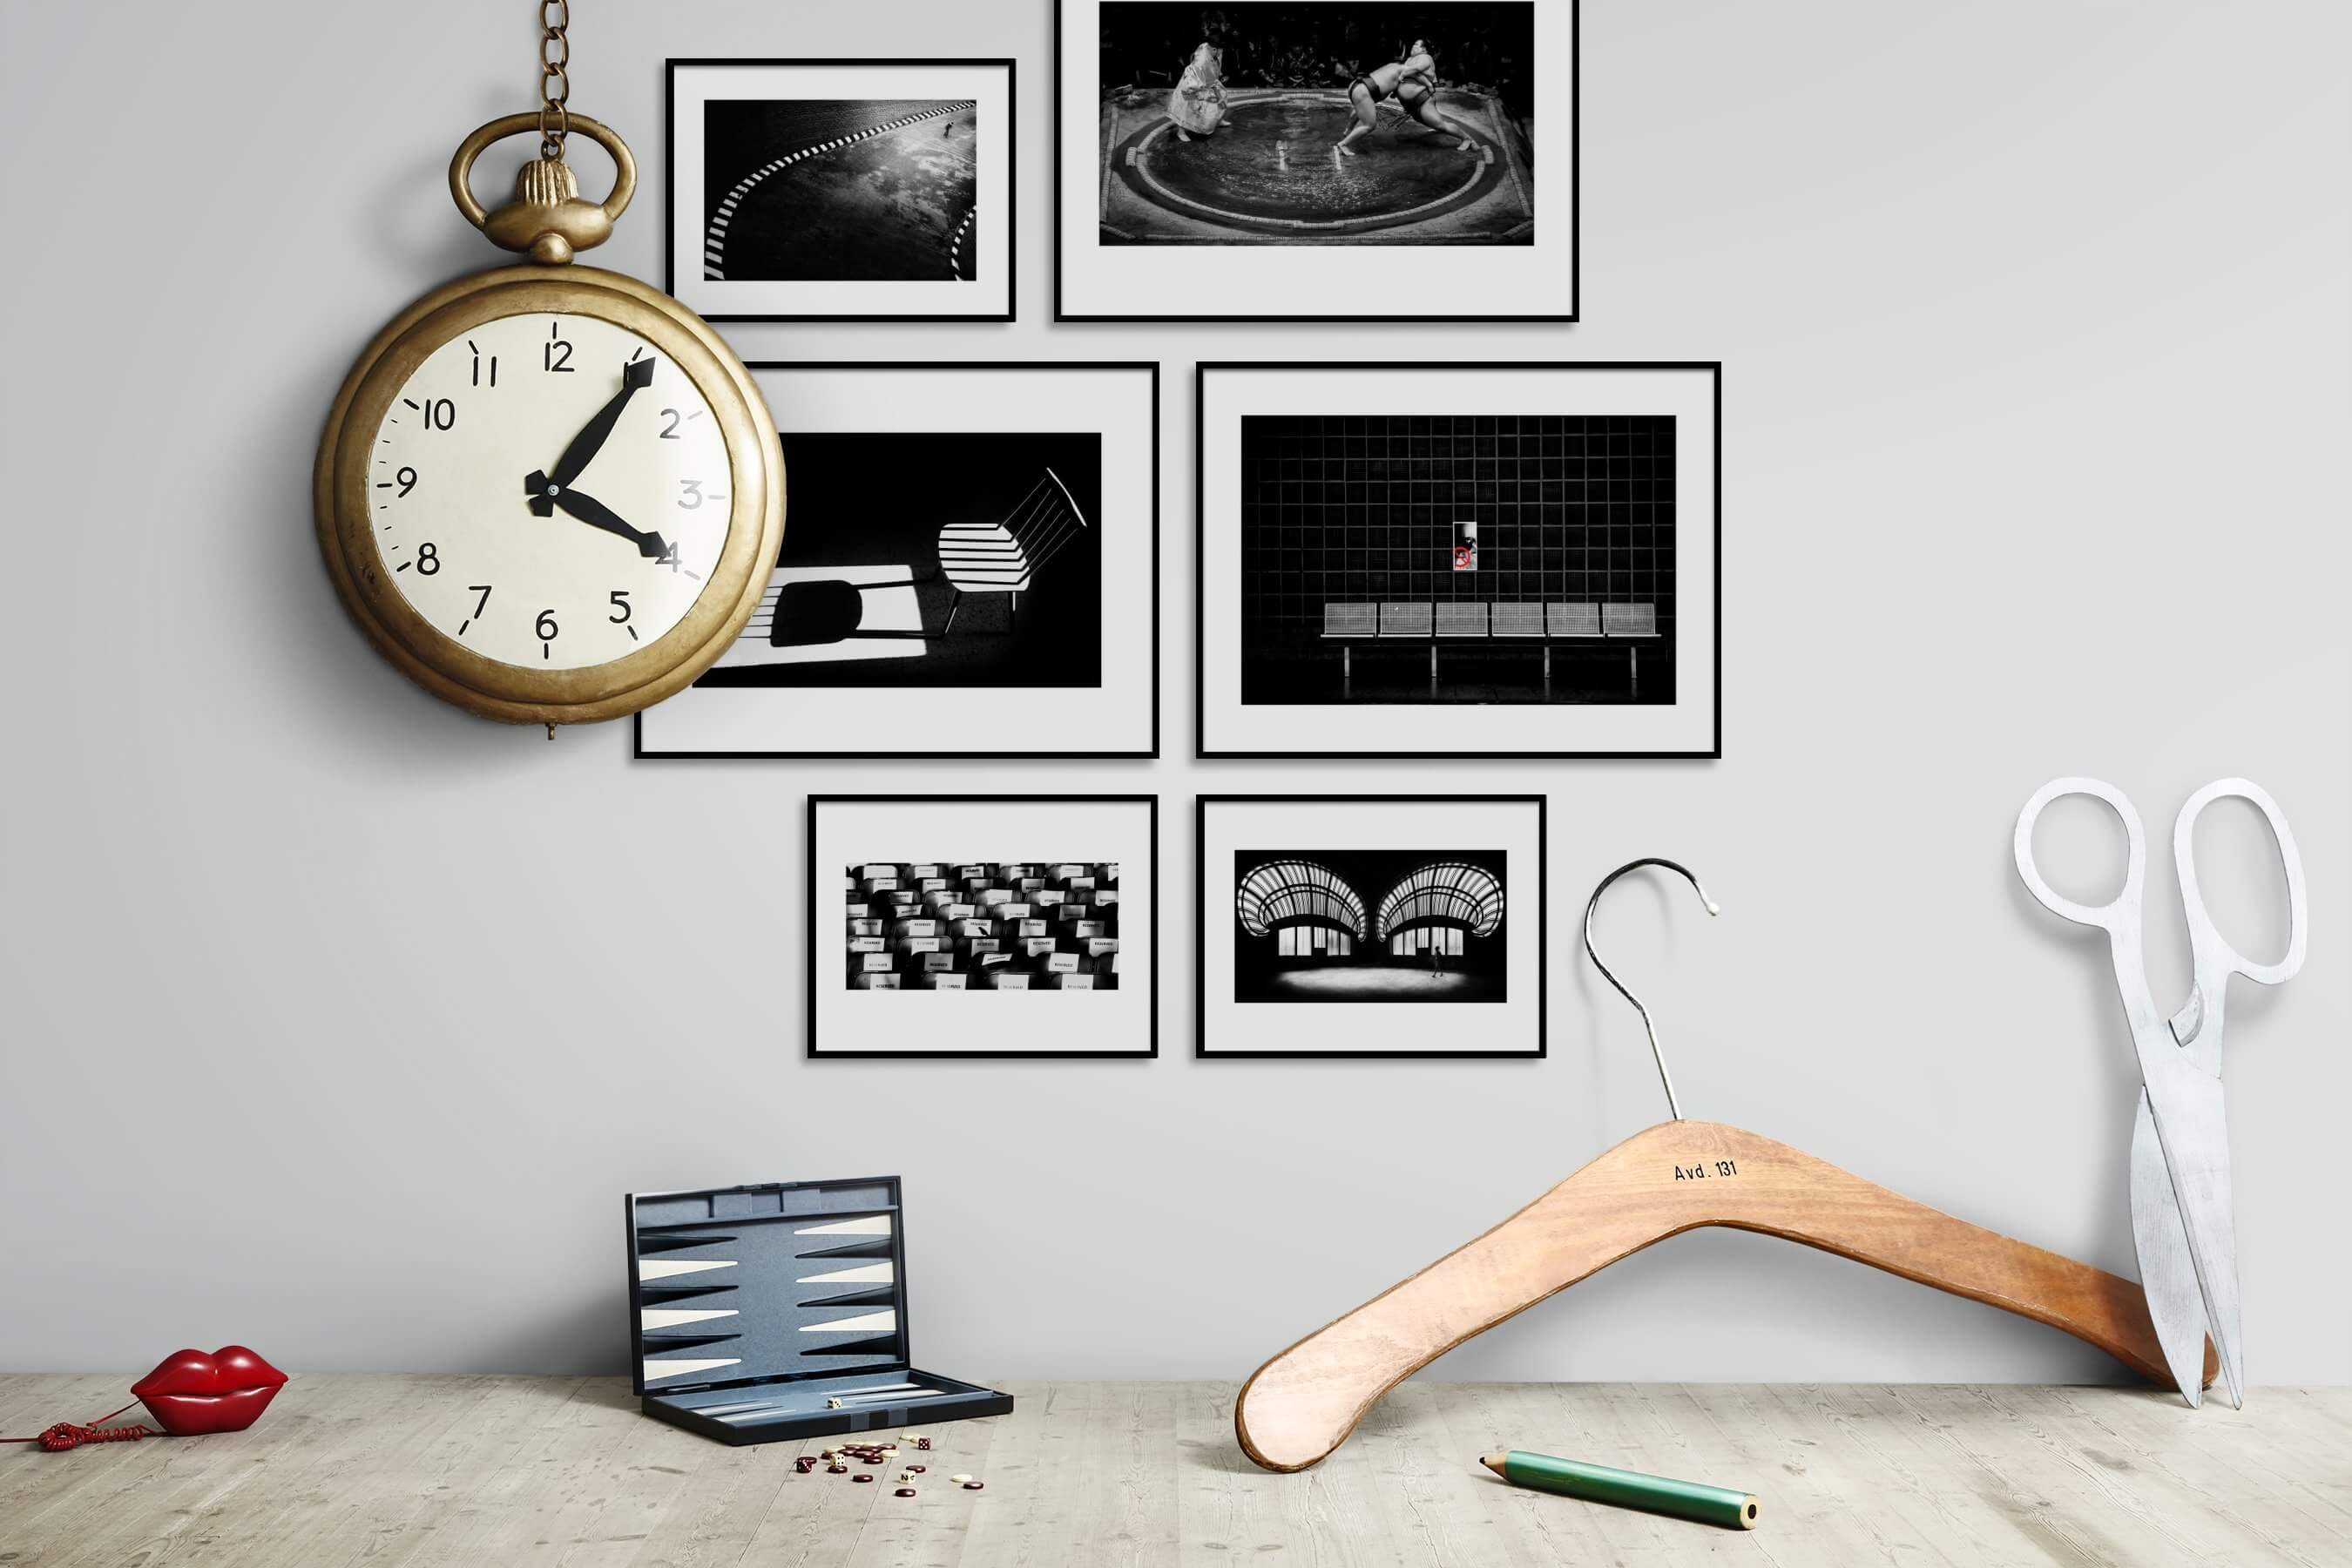 Gallery wall idea with six framed pictures arranged on a wall depicting Black & White, For the Moderate, For the Minimalist, and For the Maximalist